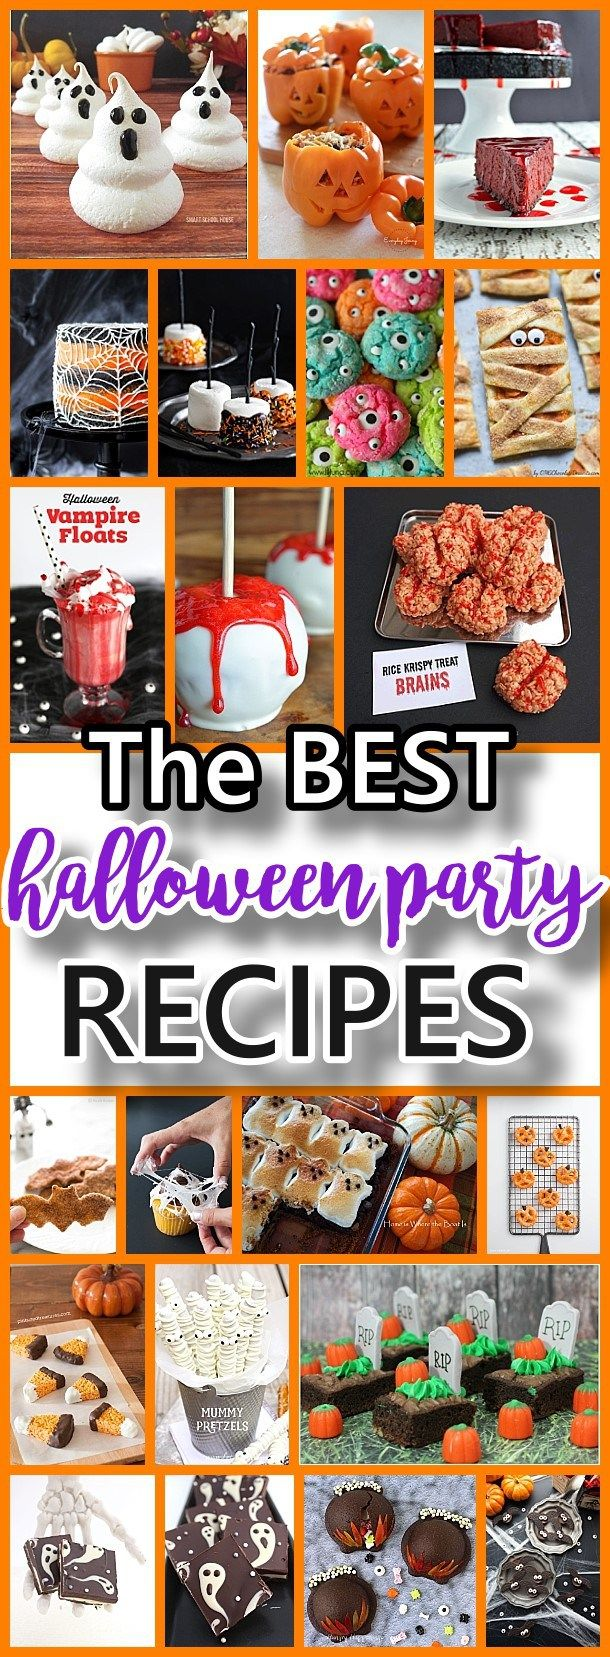 THE BEST Halloween Party Treats - Appetizers and Desserts Recipes